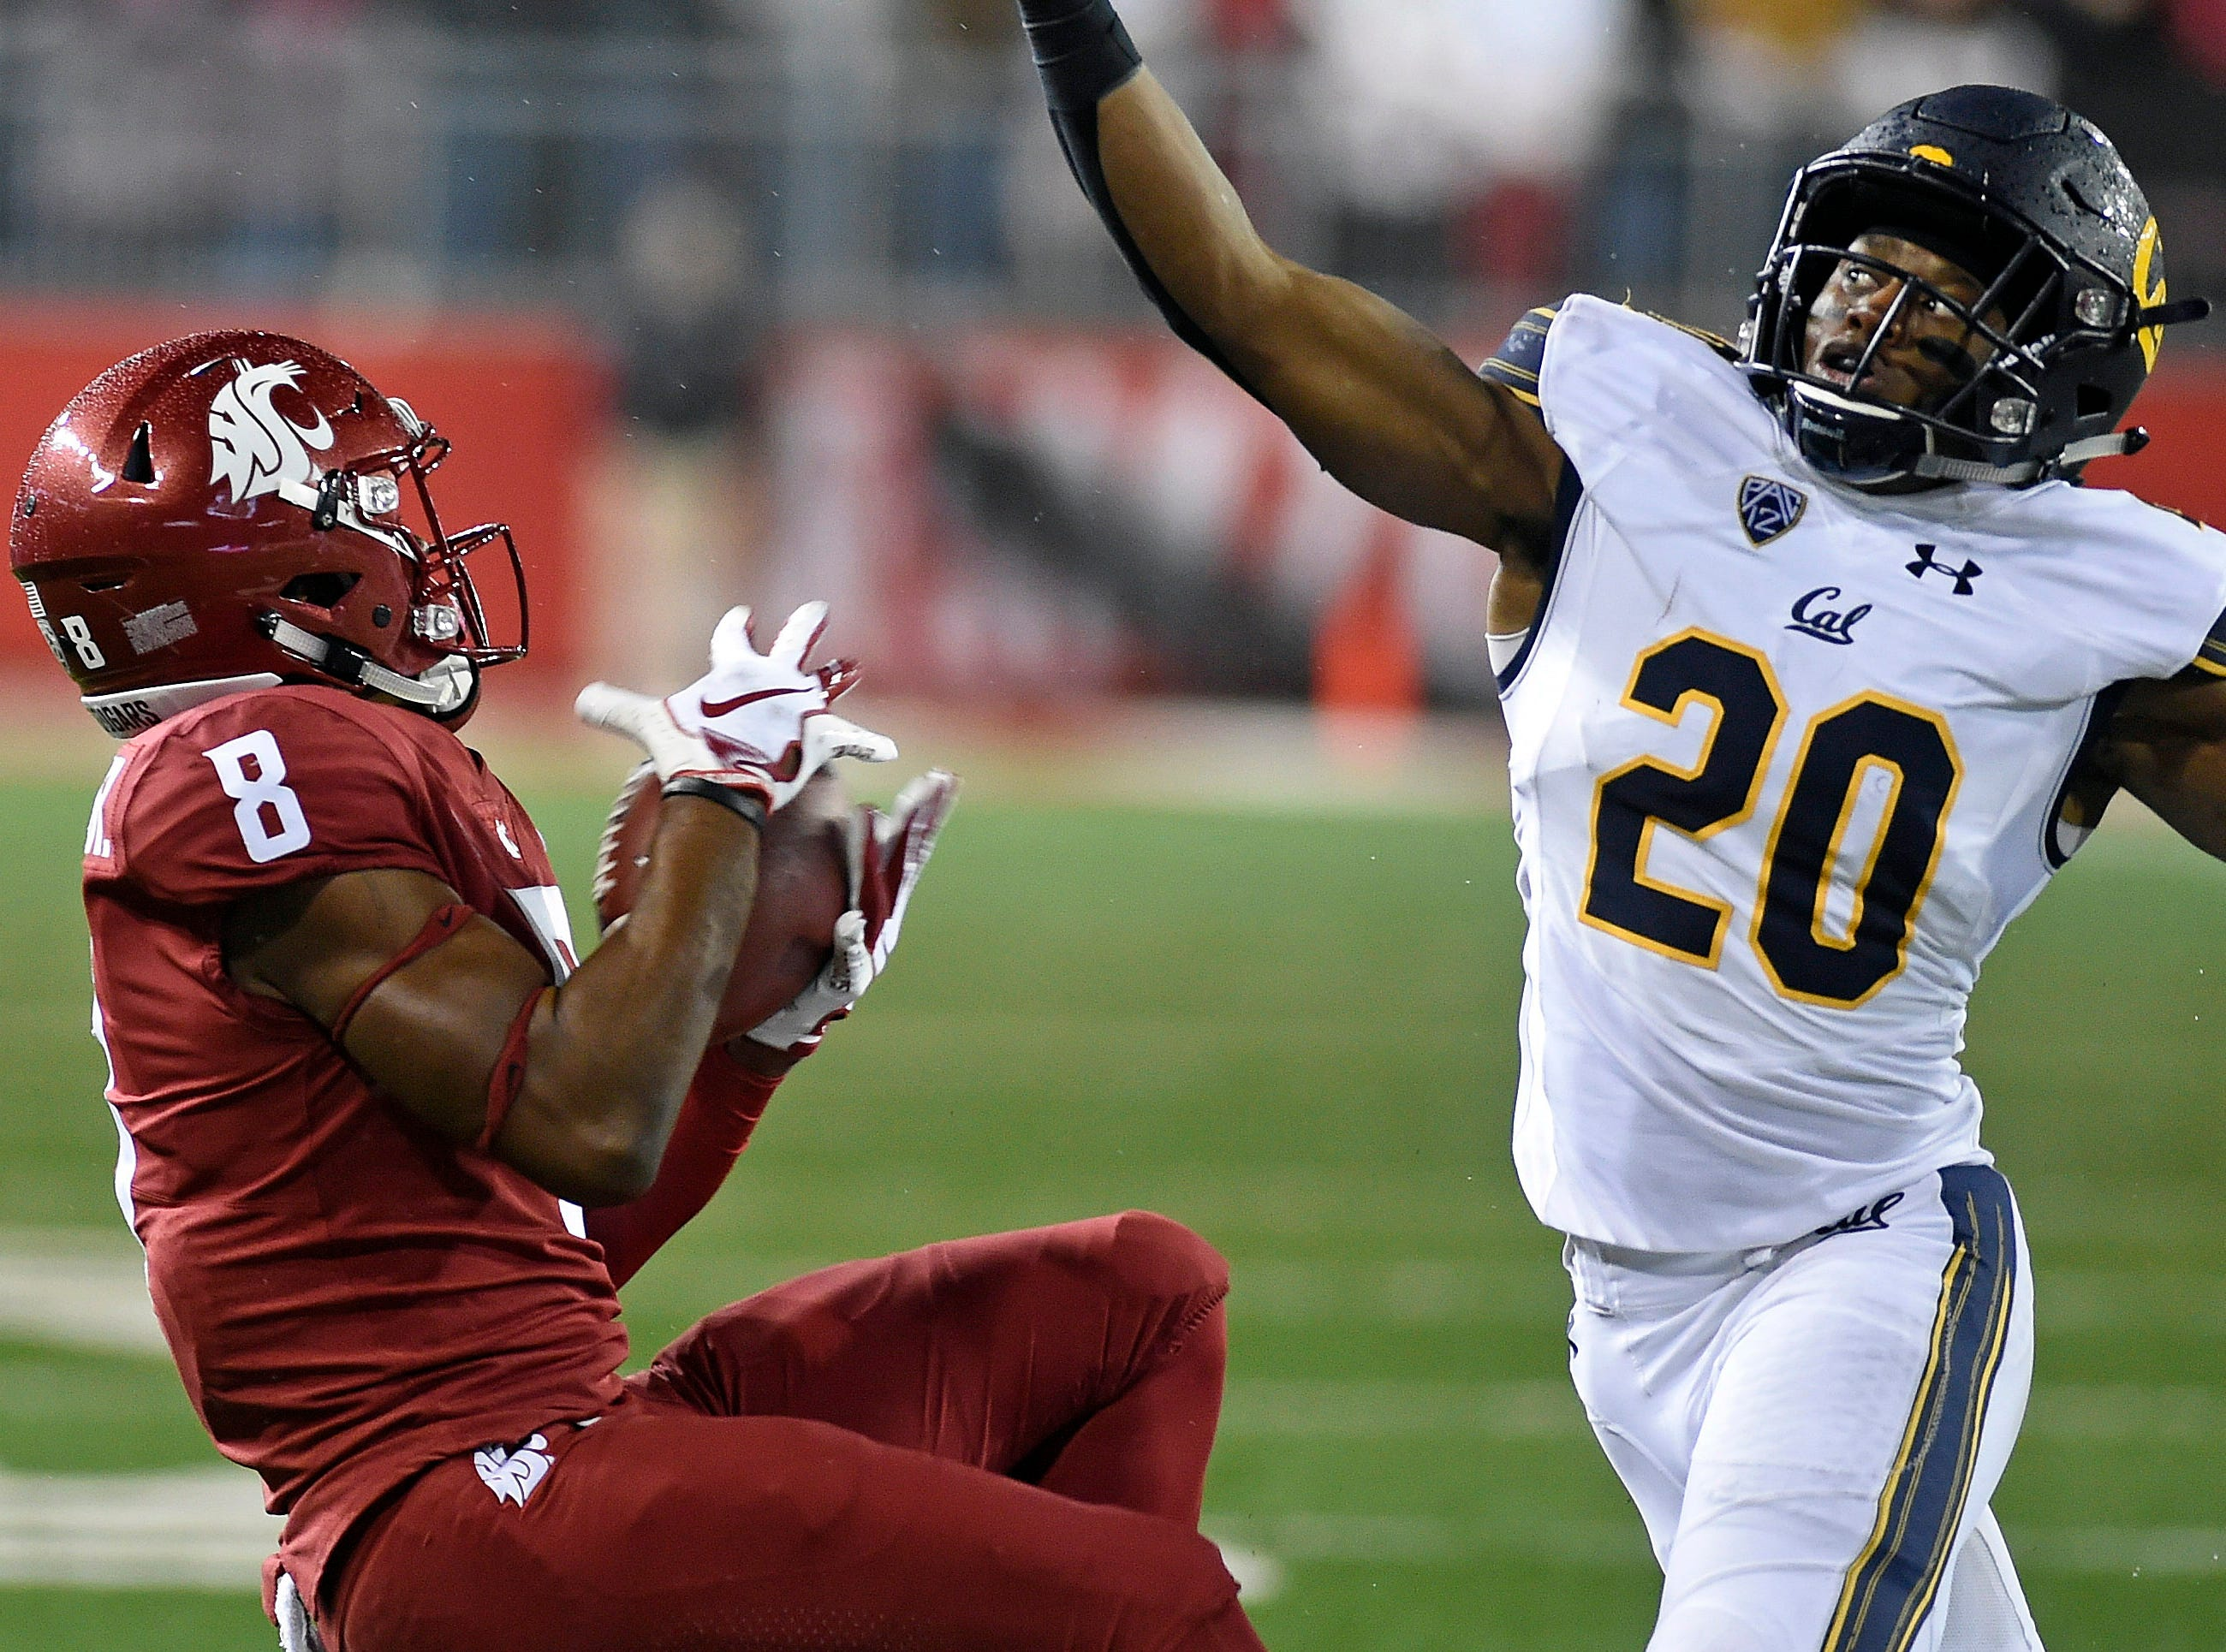 Washington State Cougars wide receiver Easop Winston (8) catches the football against California Golden Bears cornerback Josh Drayden (20) in the second half at Martin Stadium.